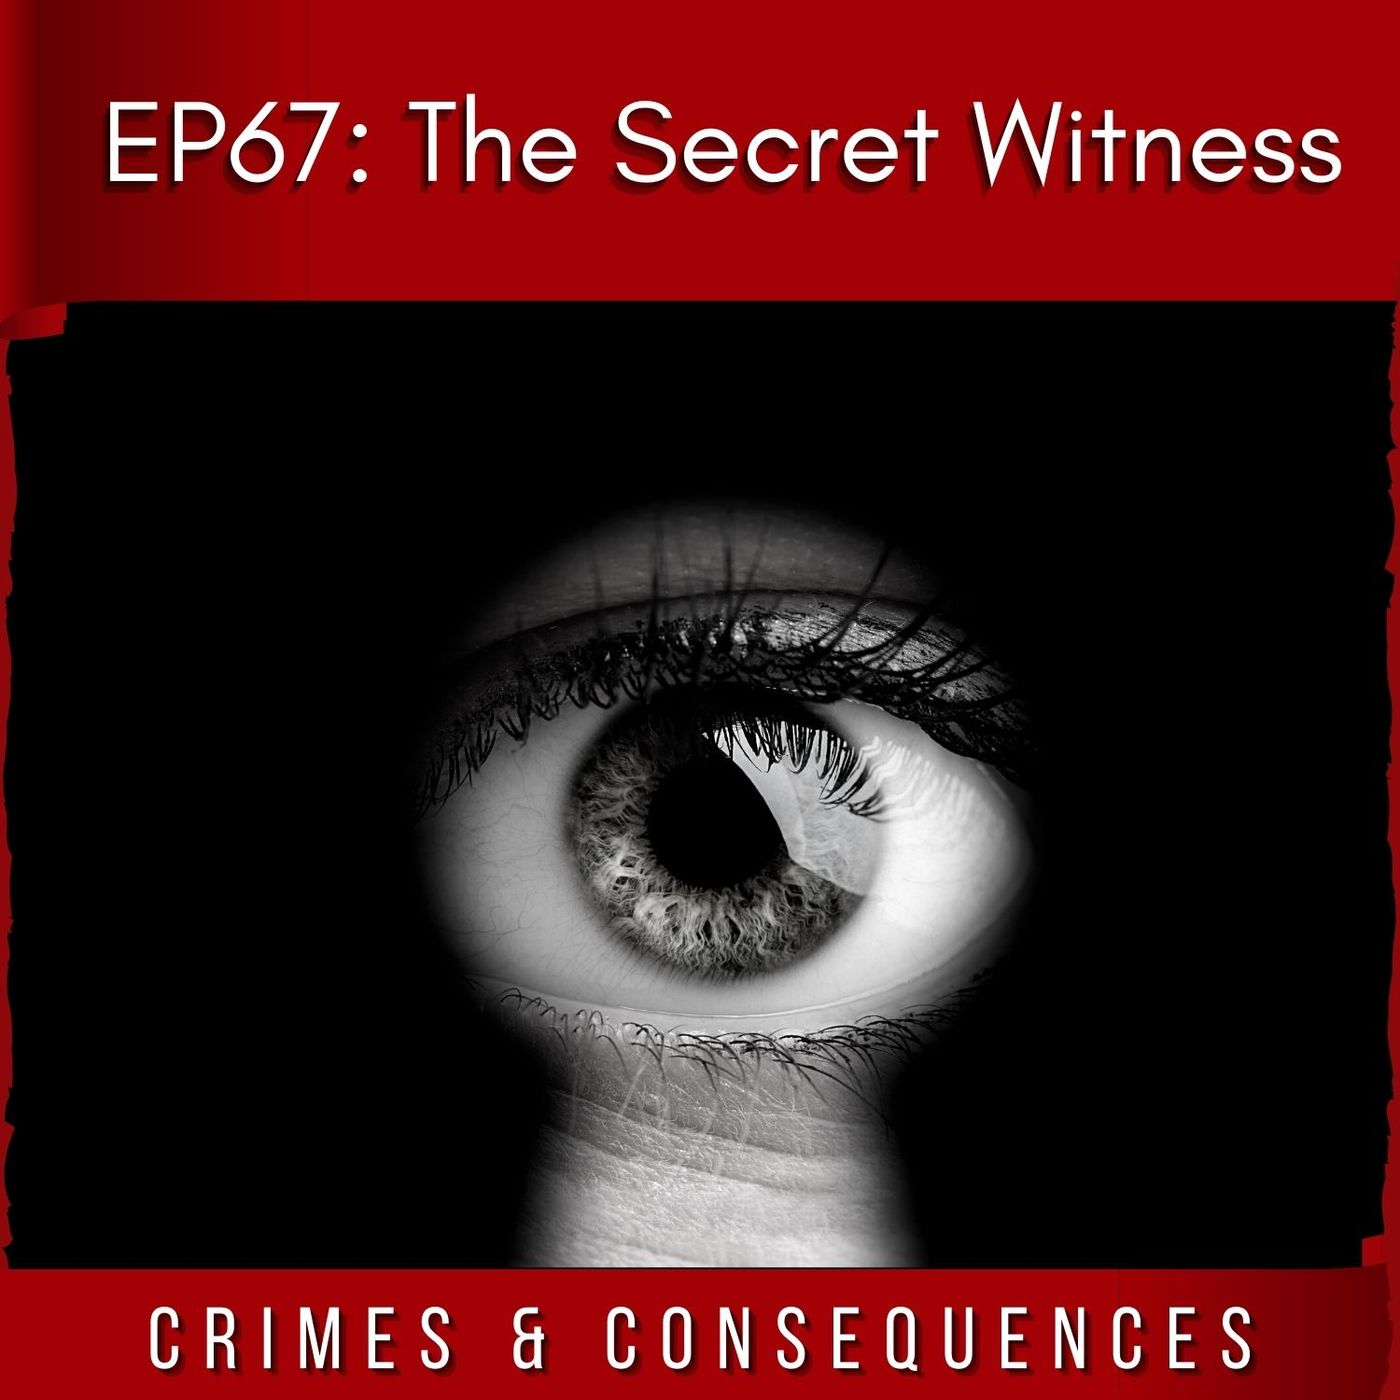 EP67: The Secret Witness